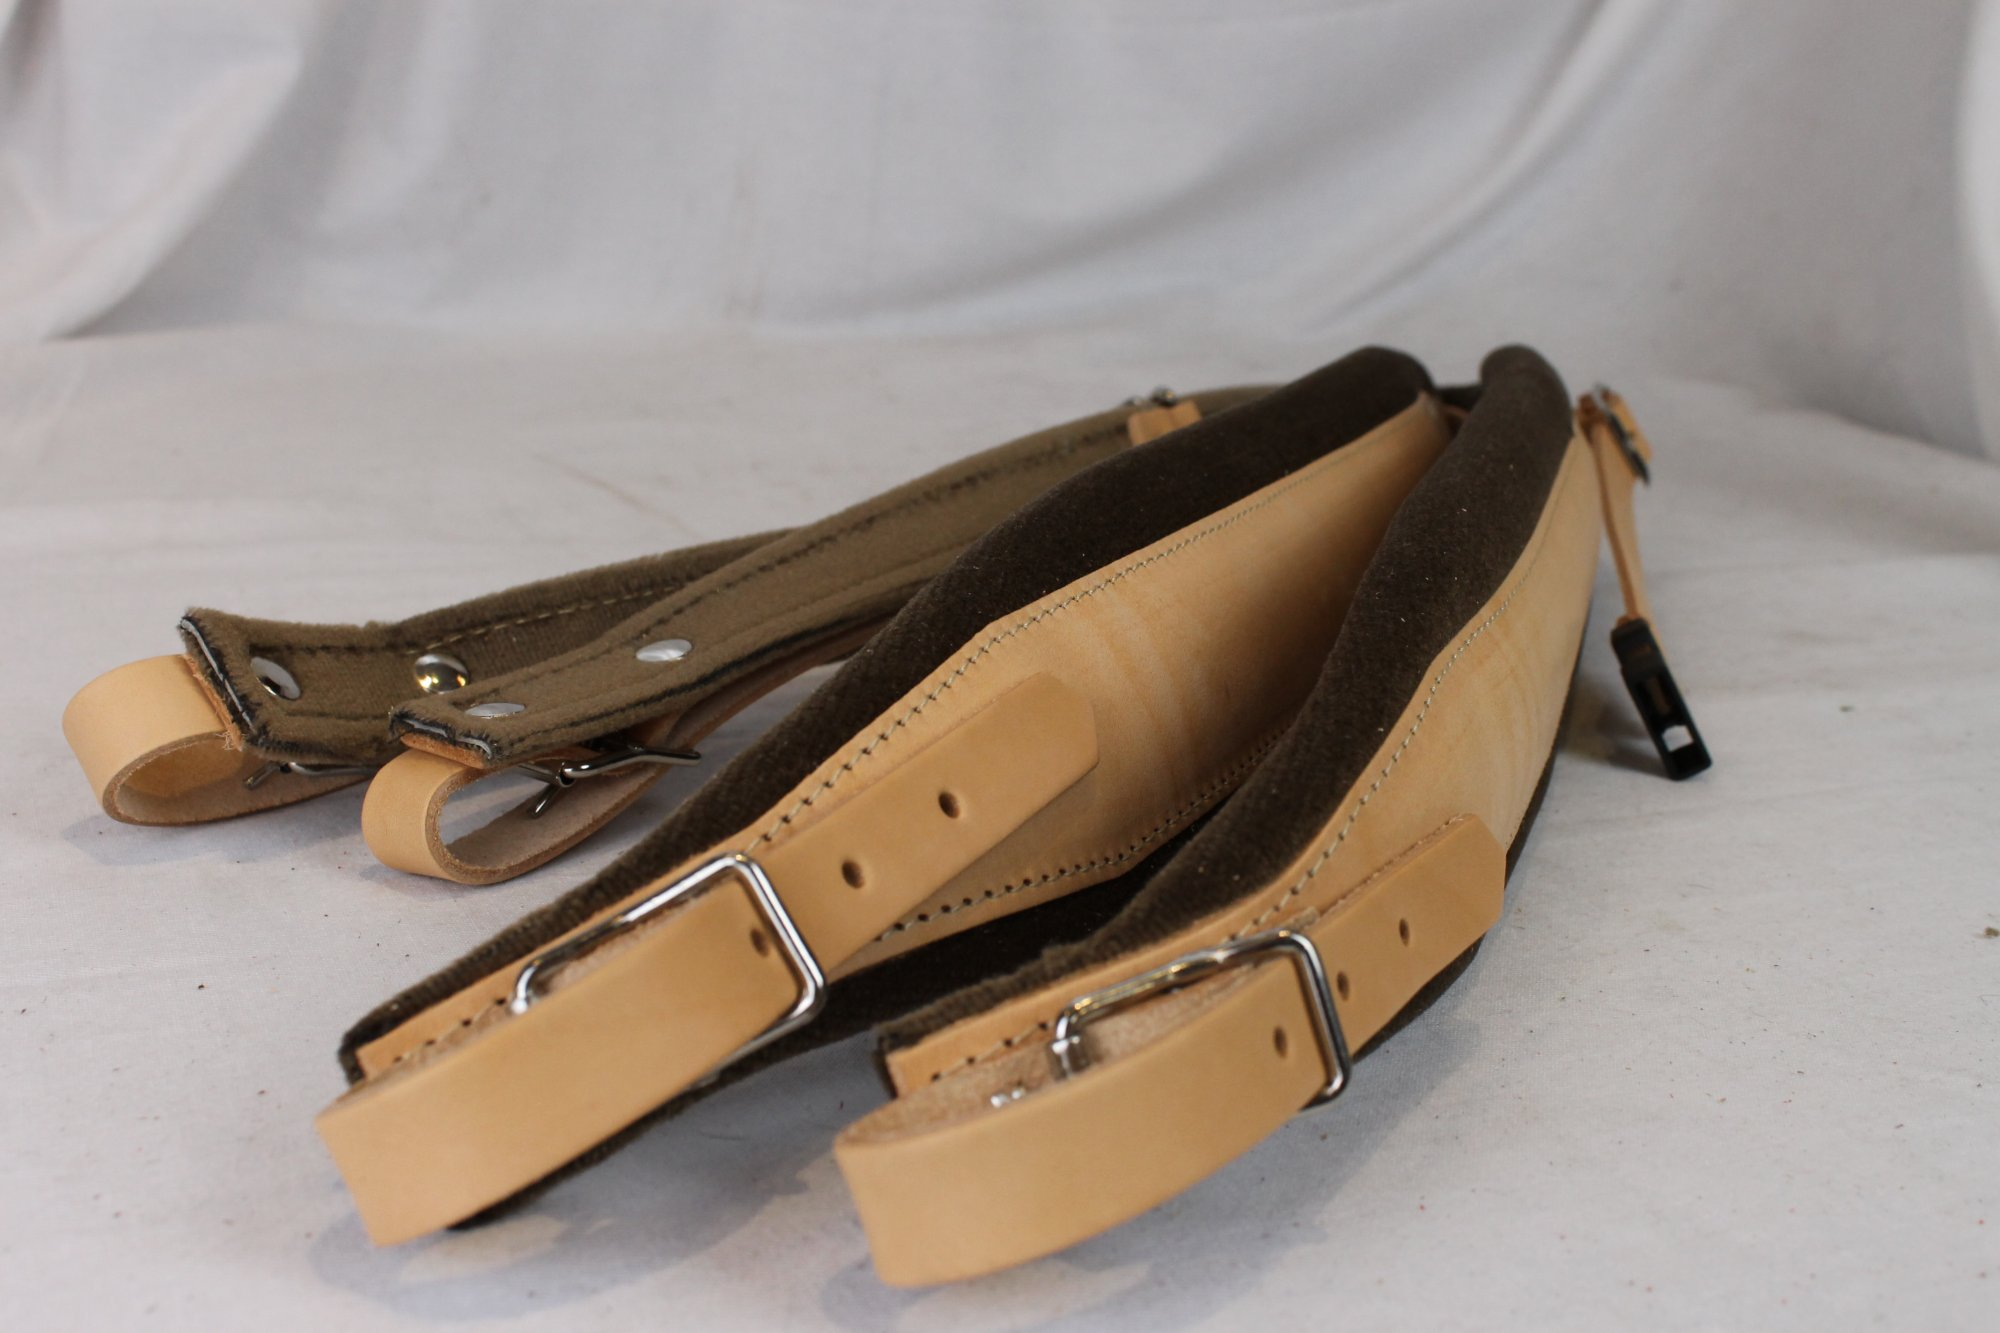 New Tan Leather Velour Fuselli Accordion Shoulder Straps Width (8cm / 3.1in) Length (85~105cm / 33.5~41.3in)